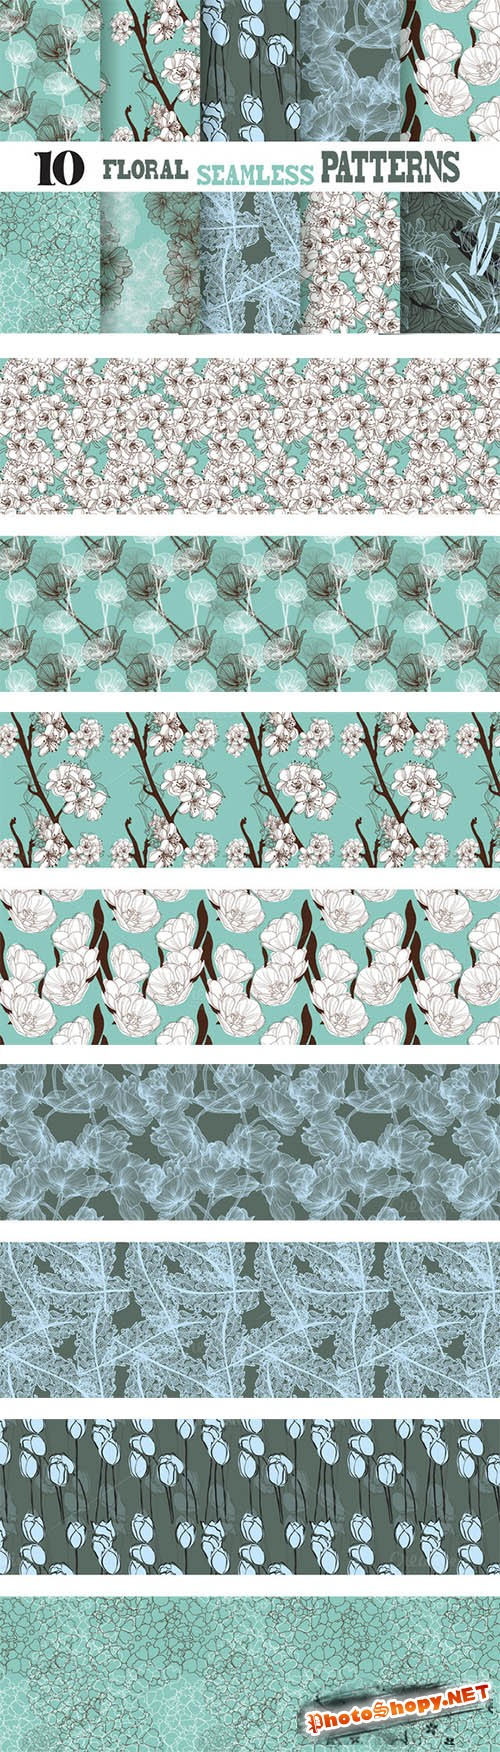 Floral Seamless Patterns - Creativemarket 49424